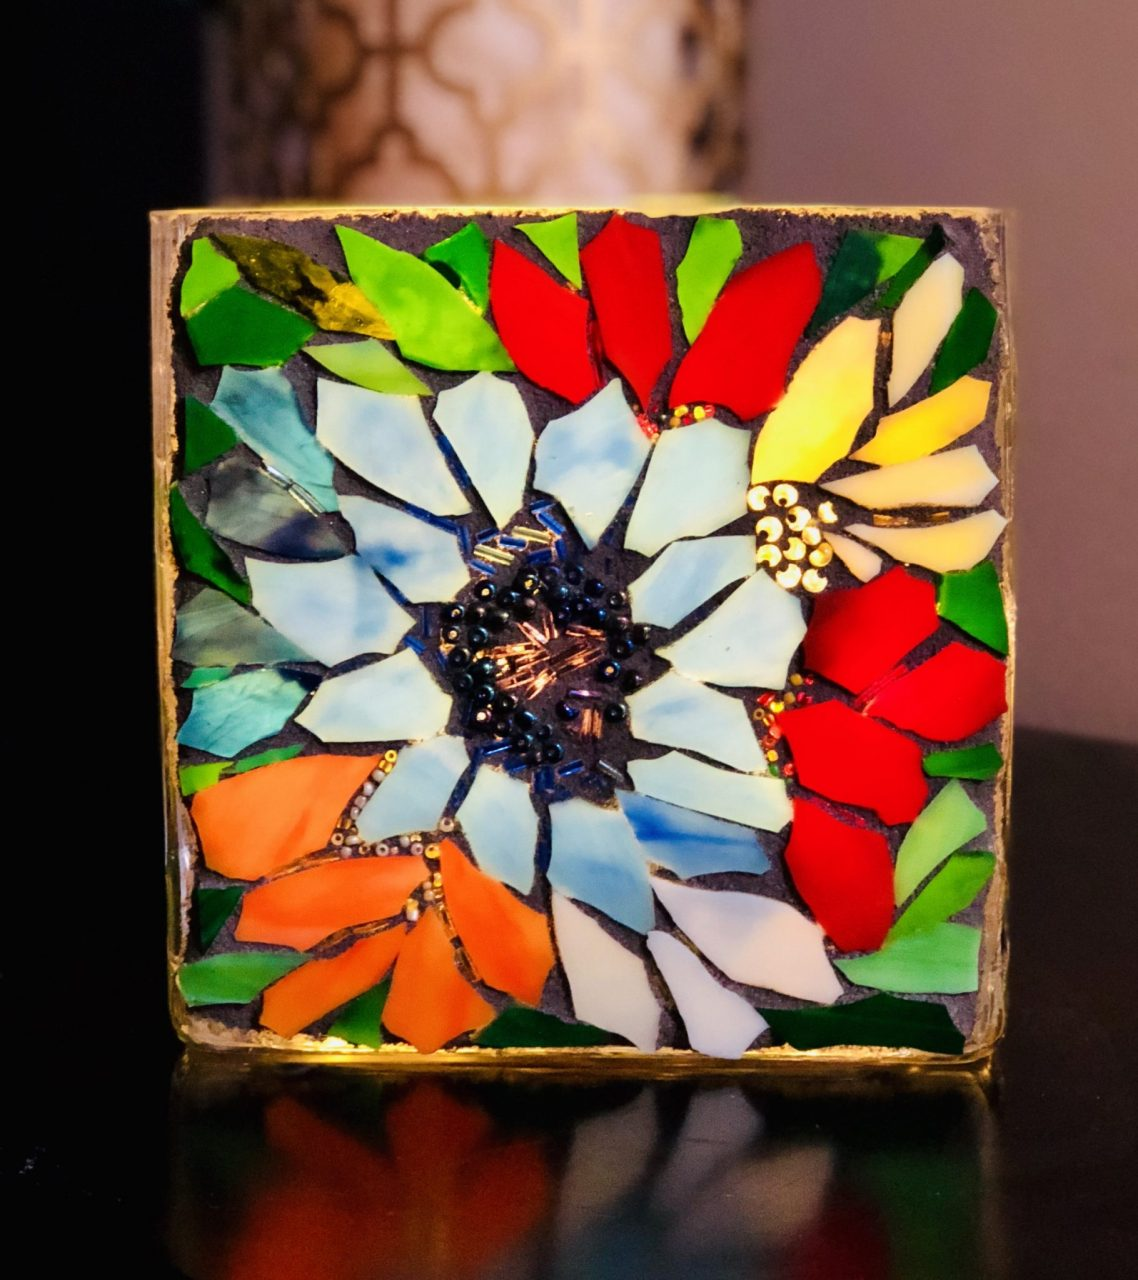 Angie's Glass Mosaic Lillie, flowers